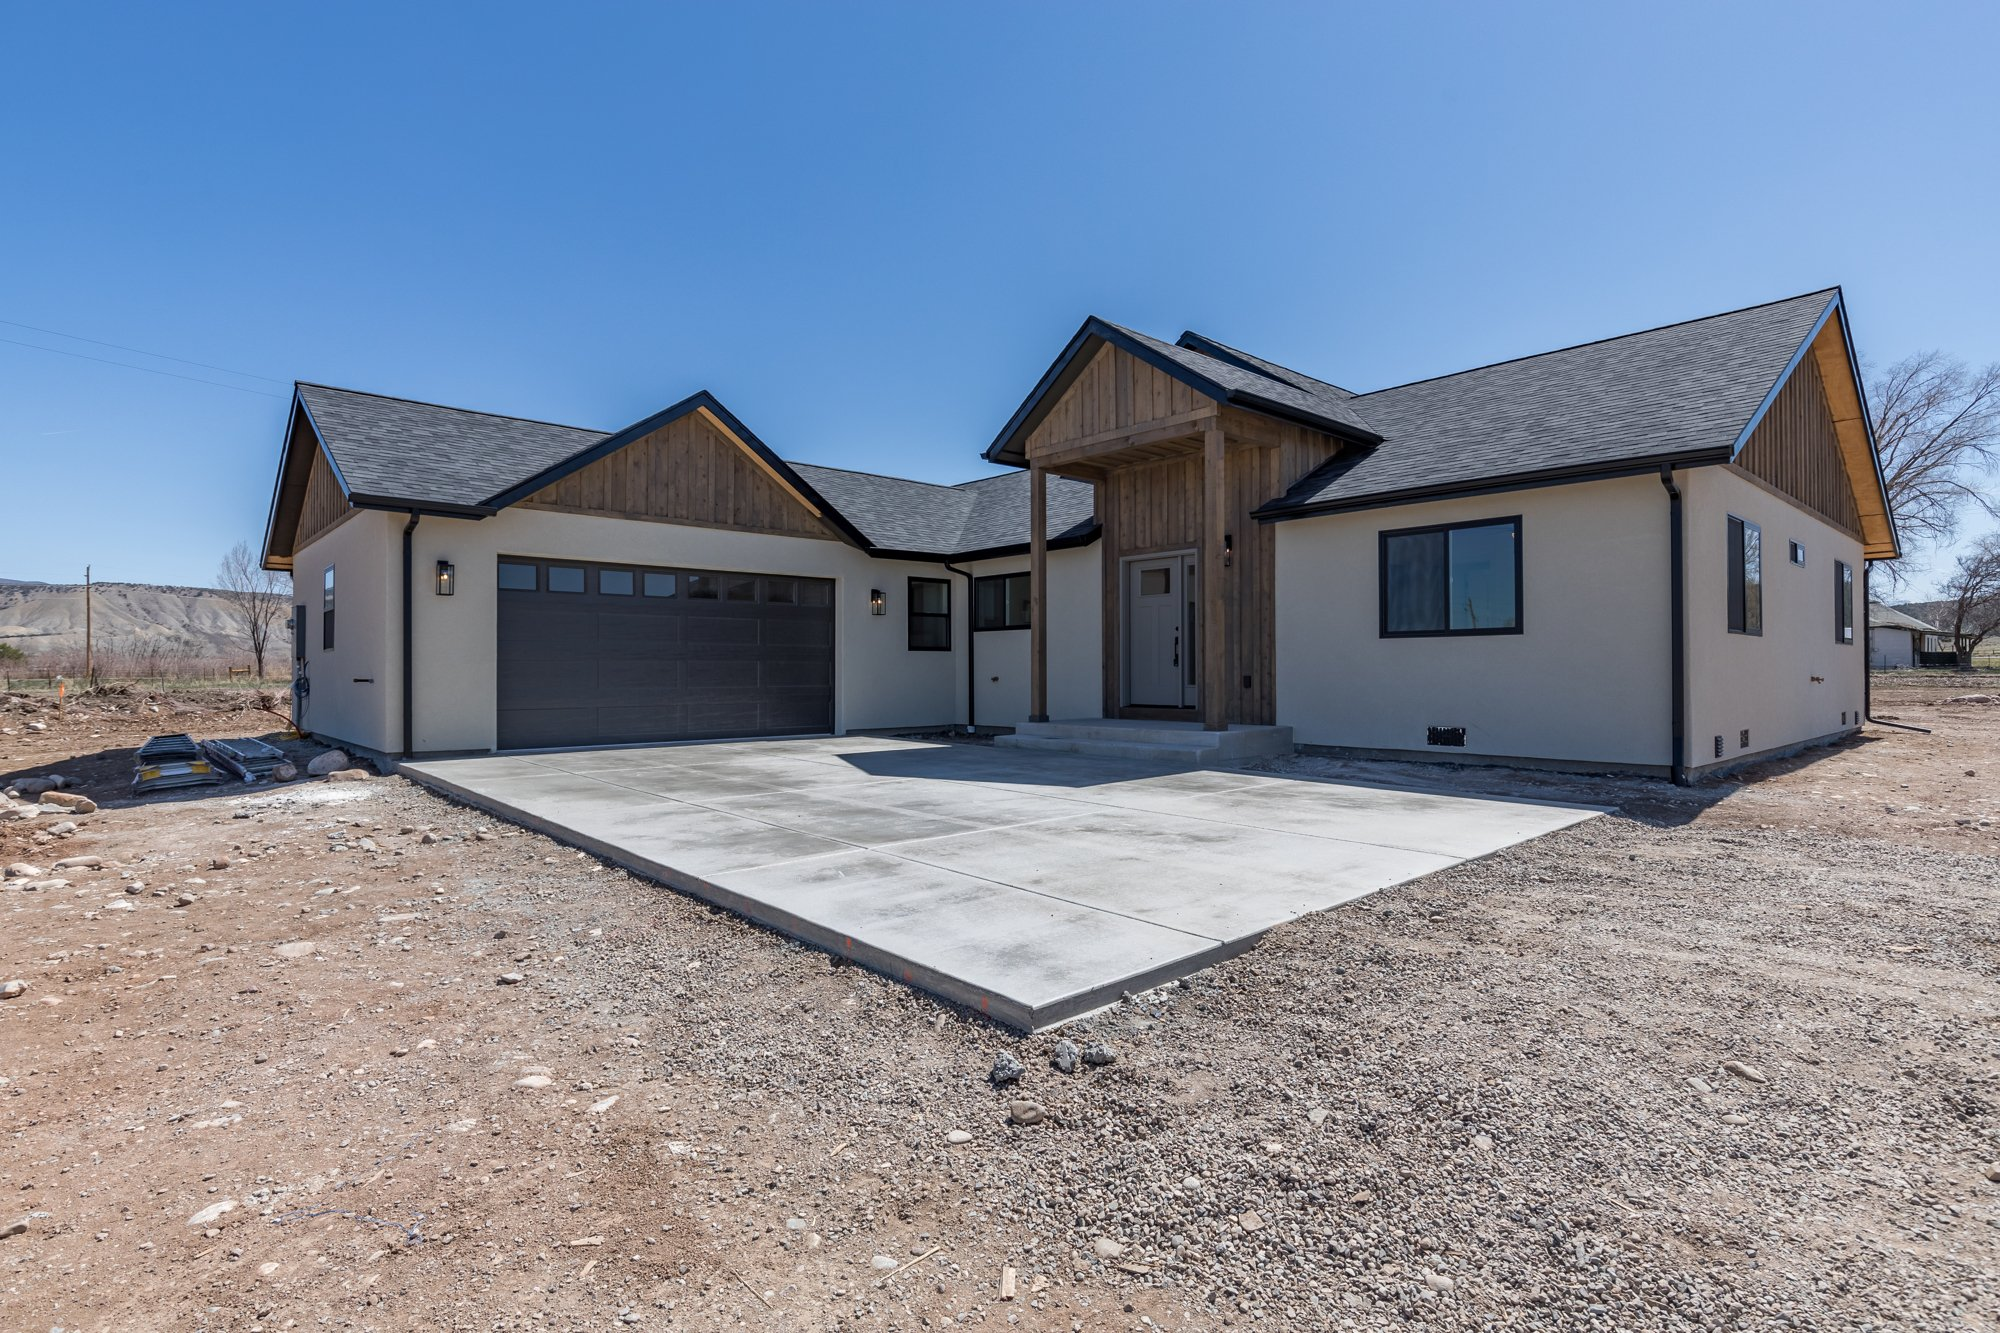 New Construction Home for Sale - TBD Highway 550 Montrose, CO 81403 - Atha Team New Construction Real Estate